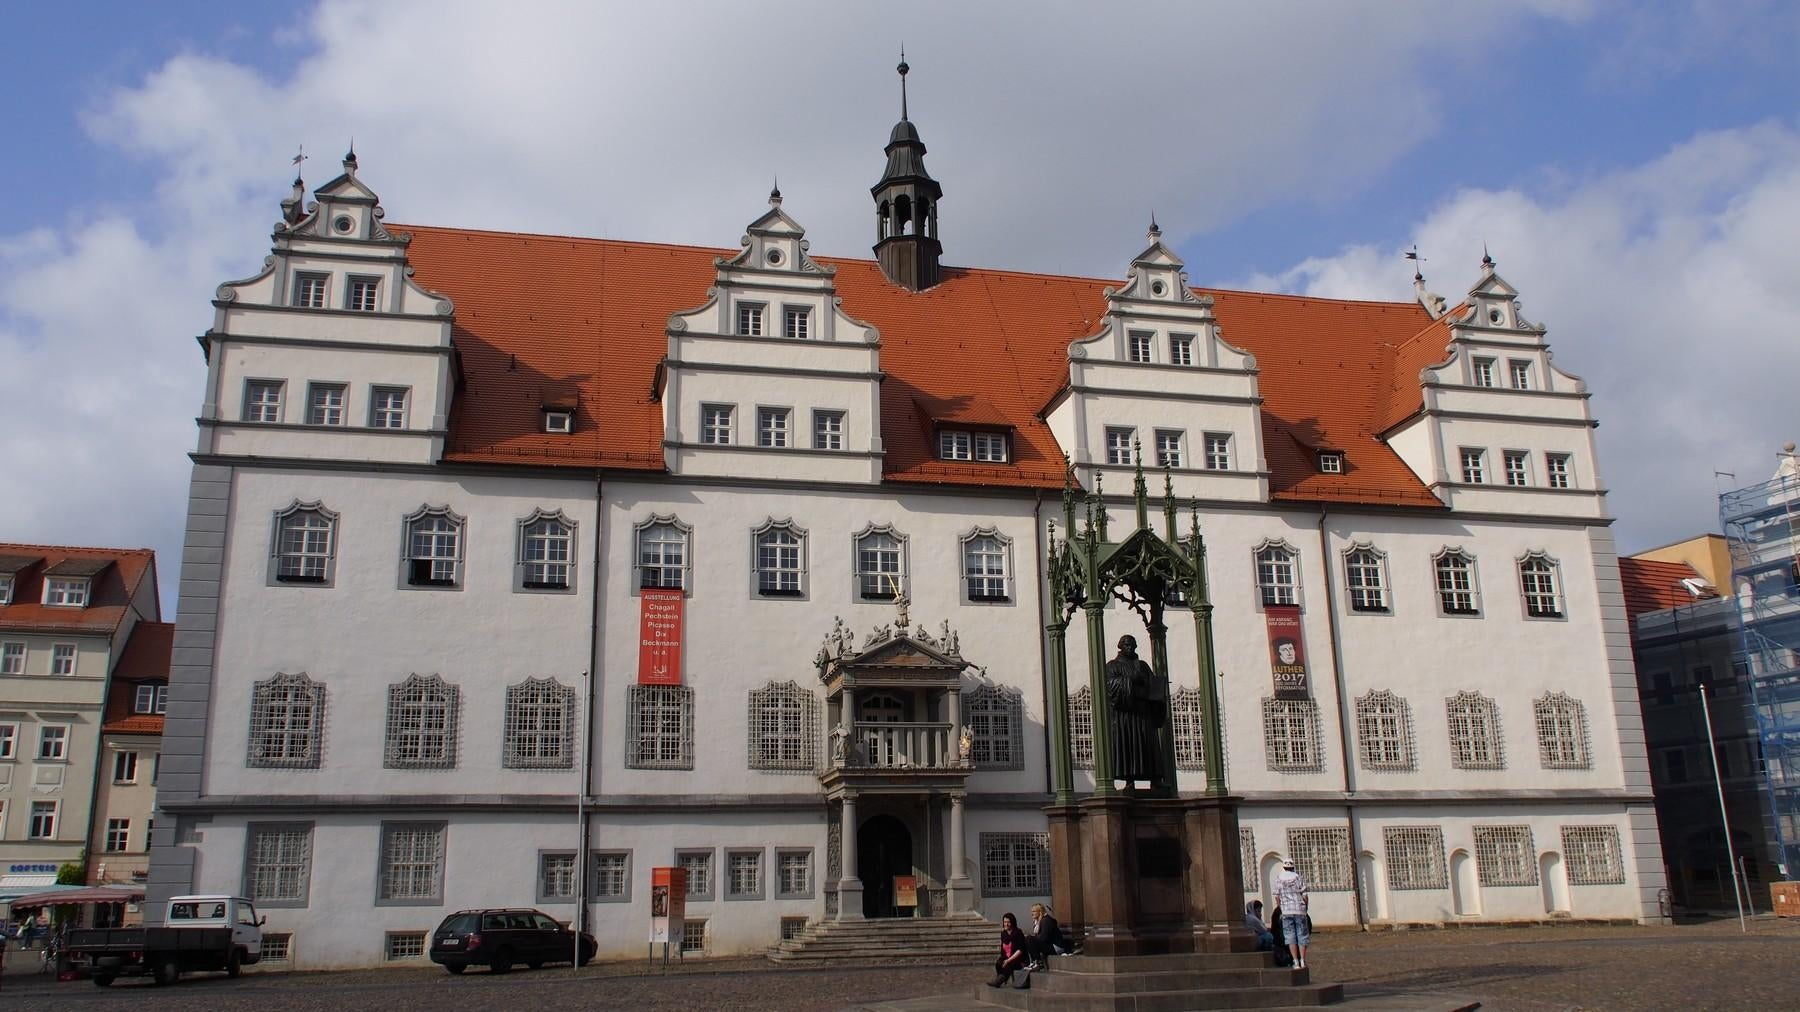 Luther memorials in Wittenberg